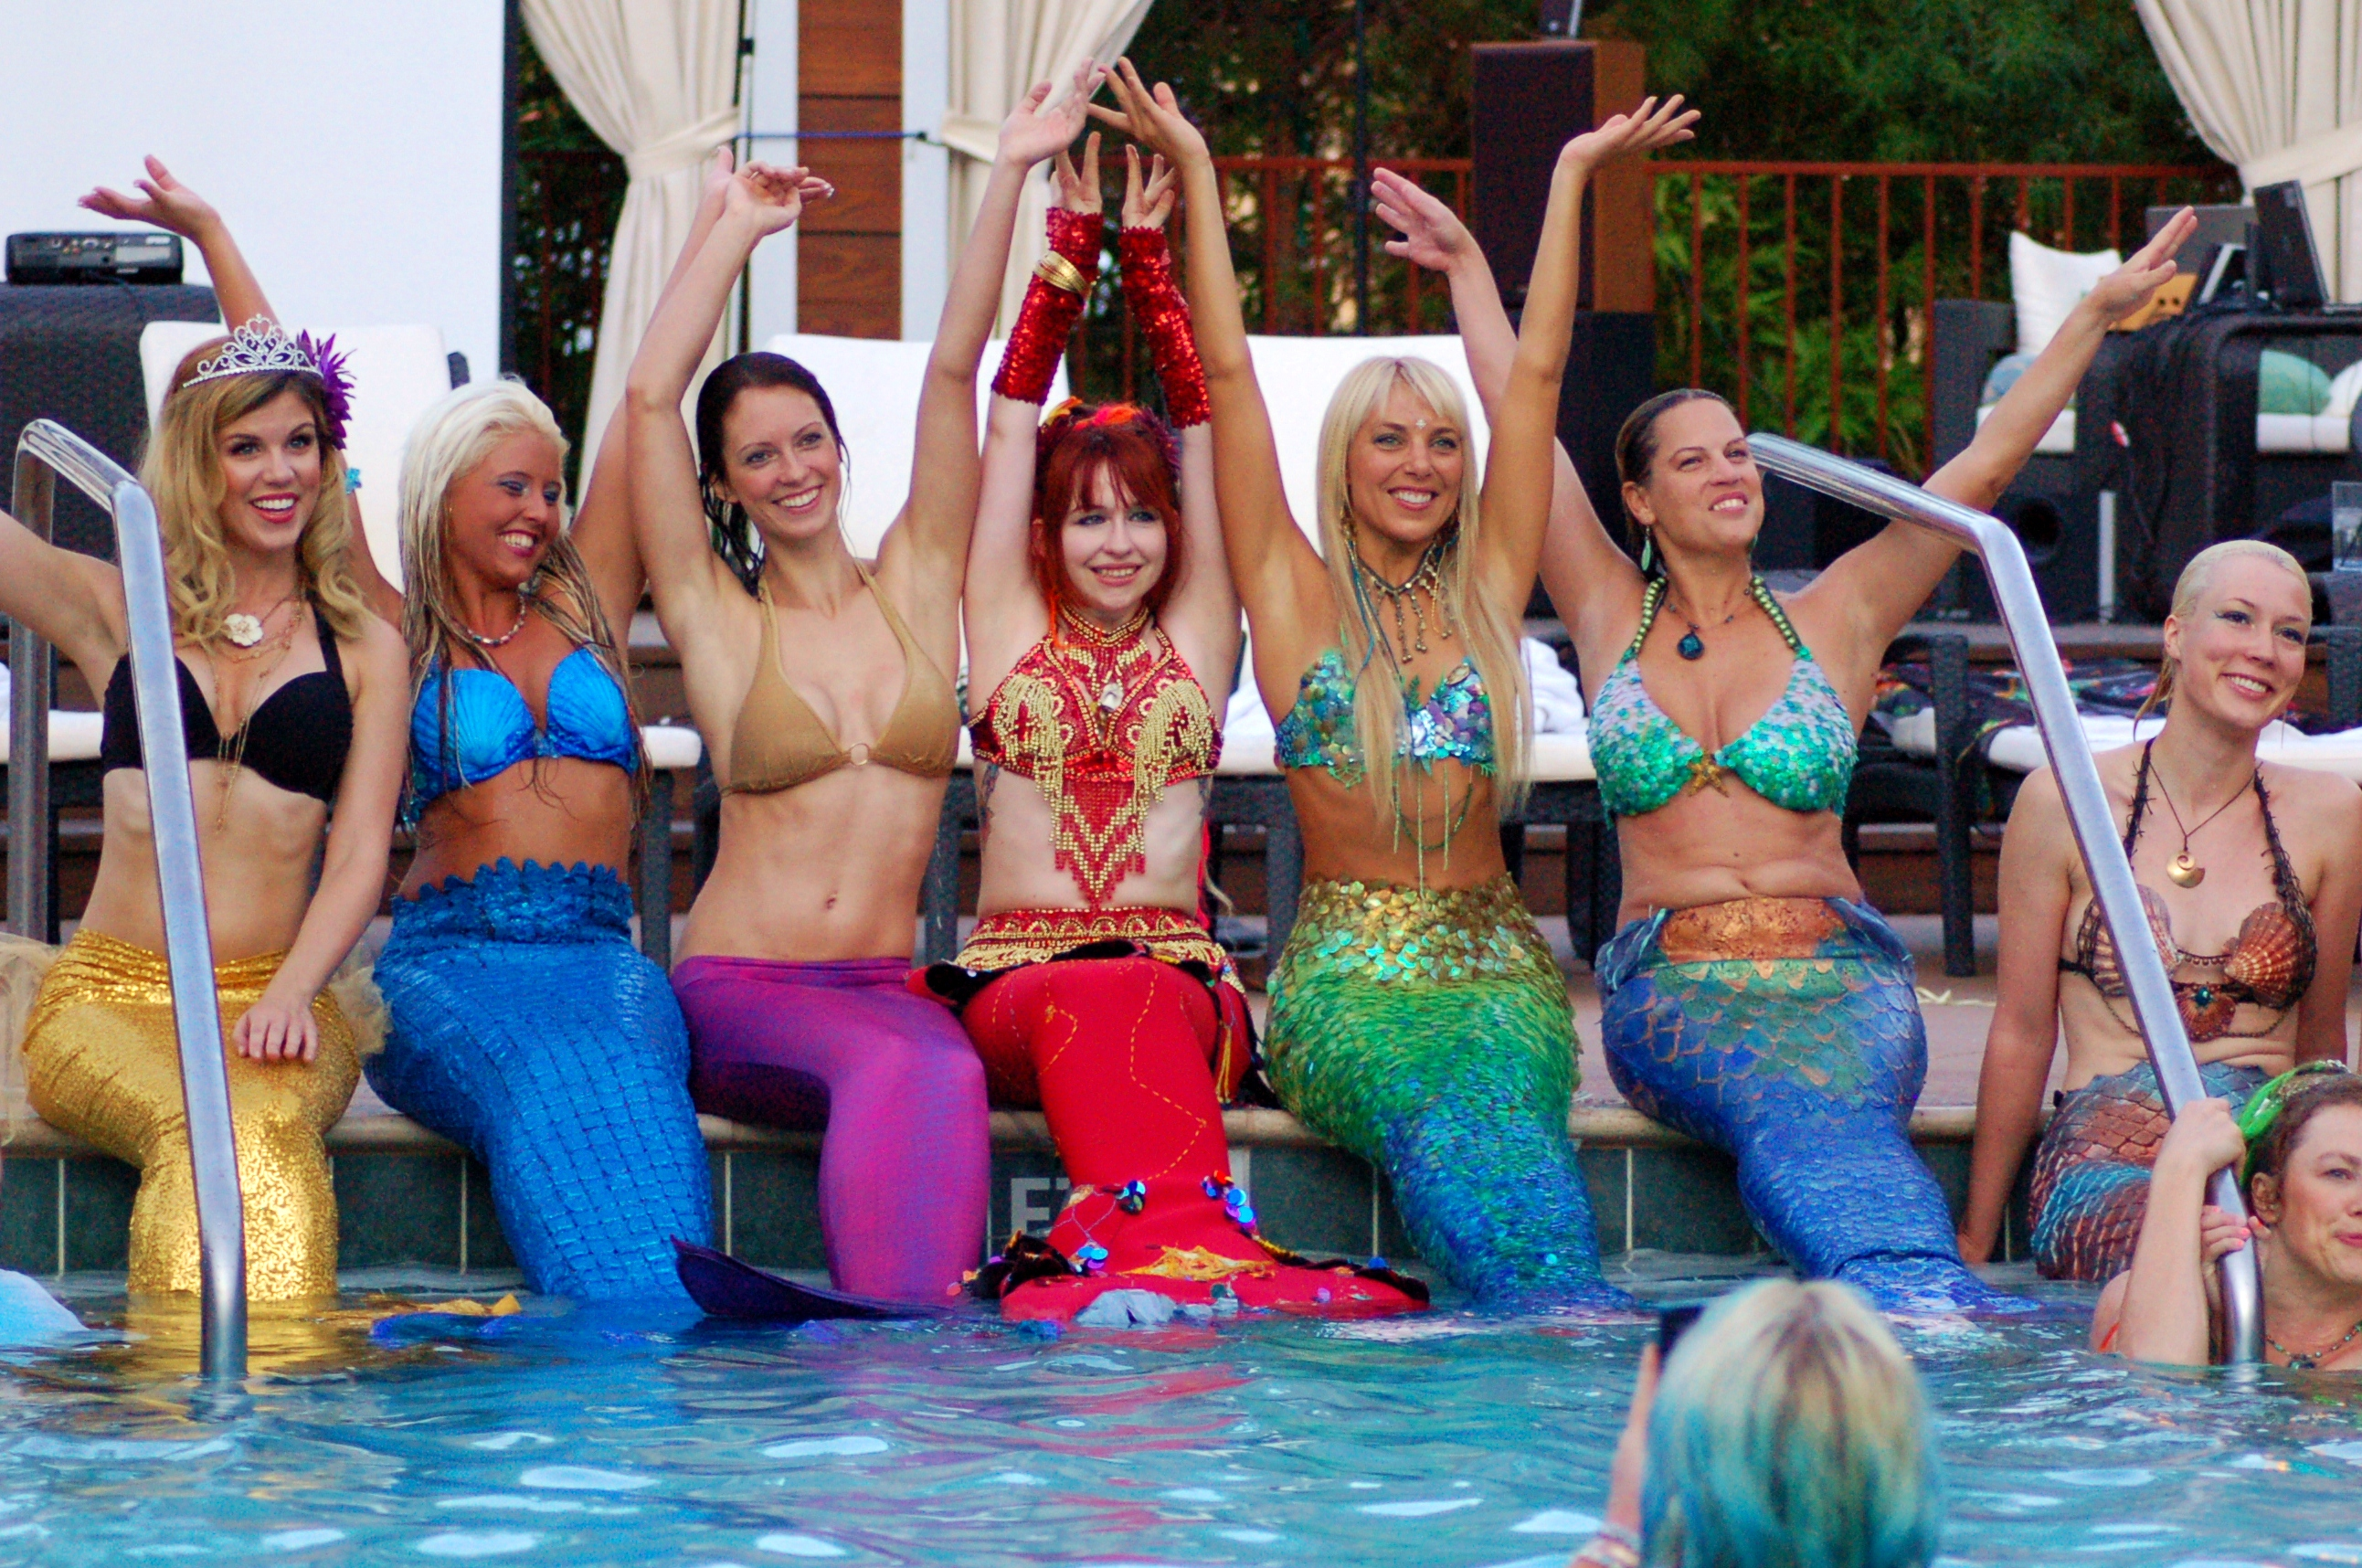 Mermaid Convention Photography Photo #281